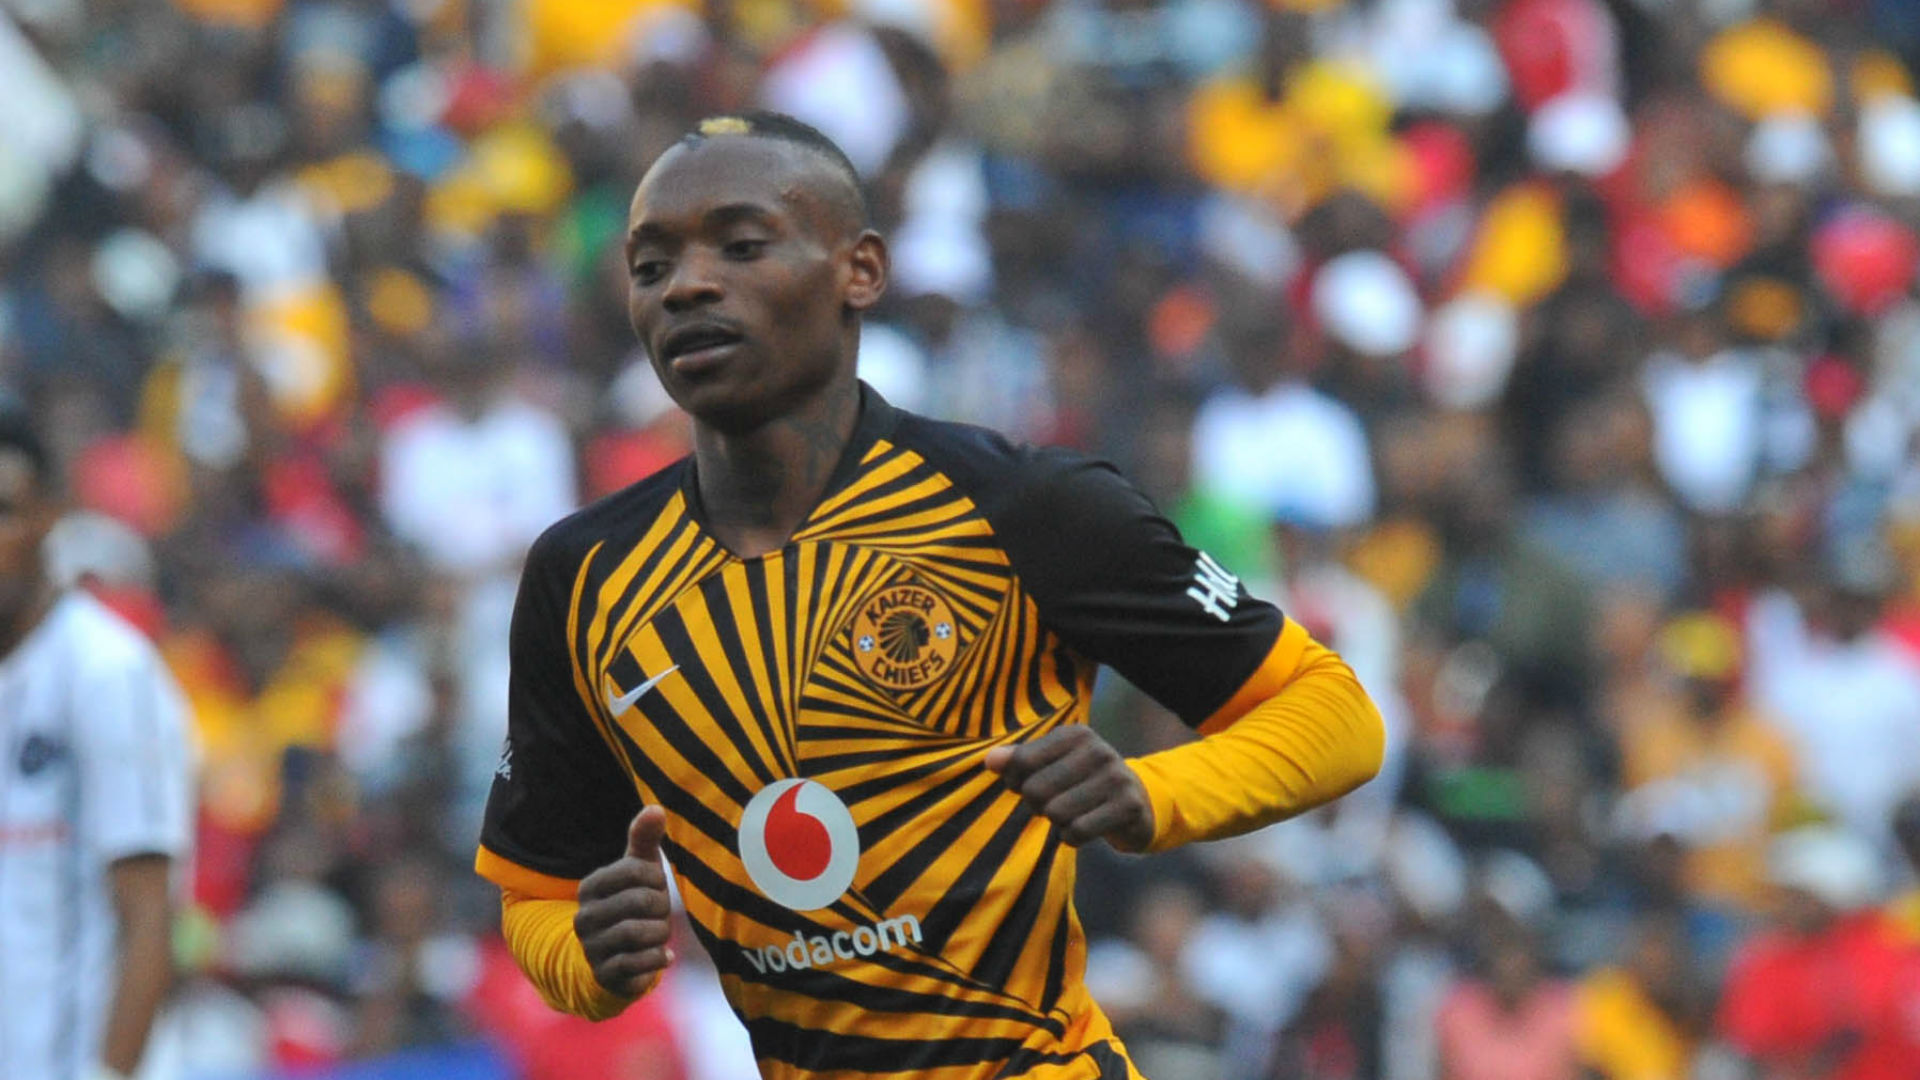 Khama Billiat: What has the Kaizer Chiefs talisman done since arriving in South Africa?